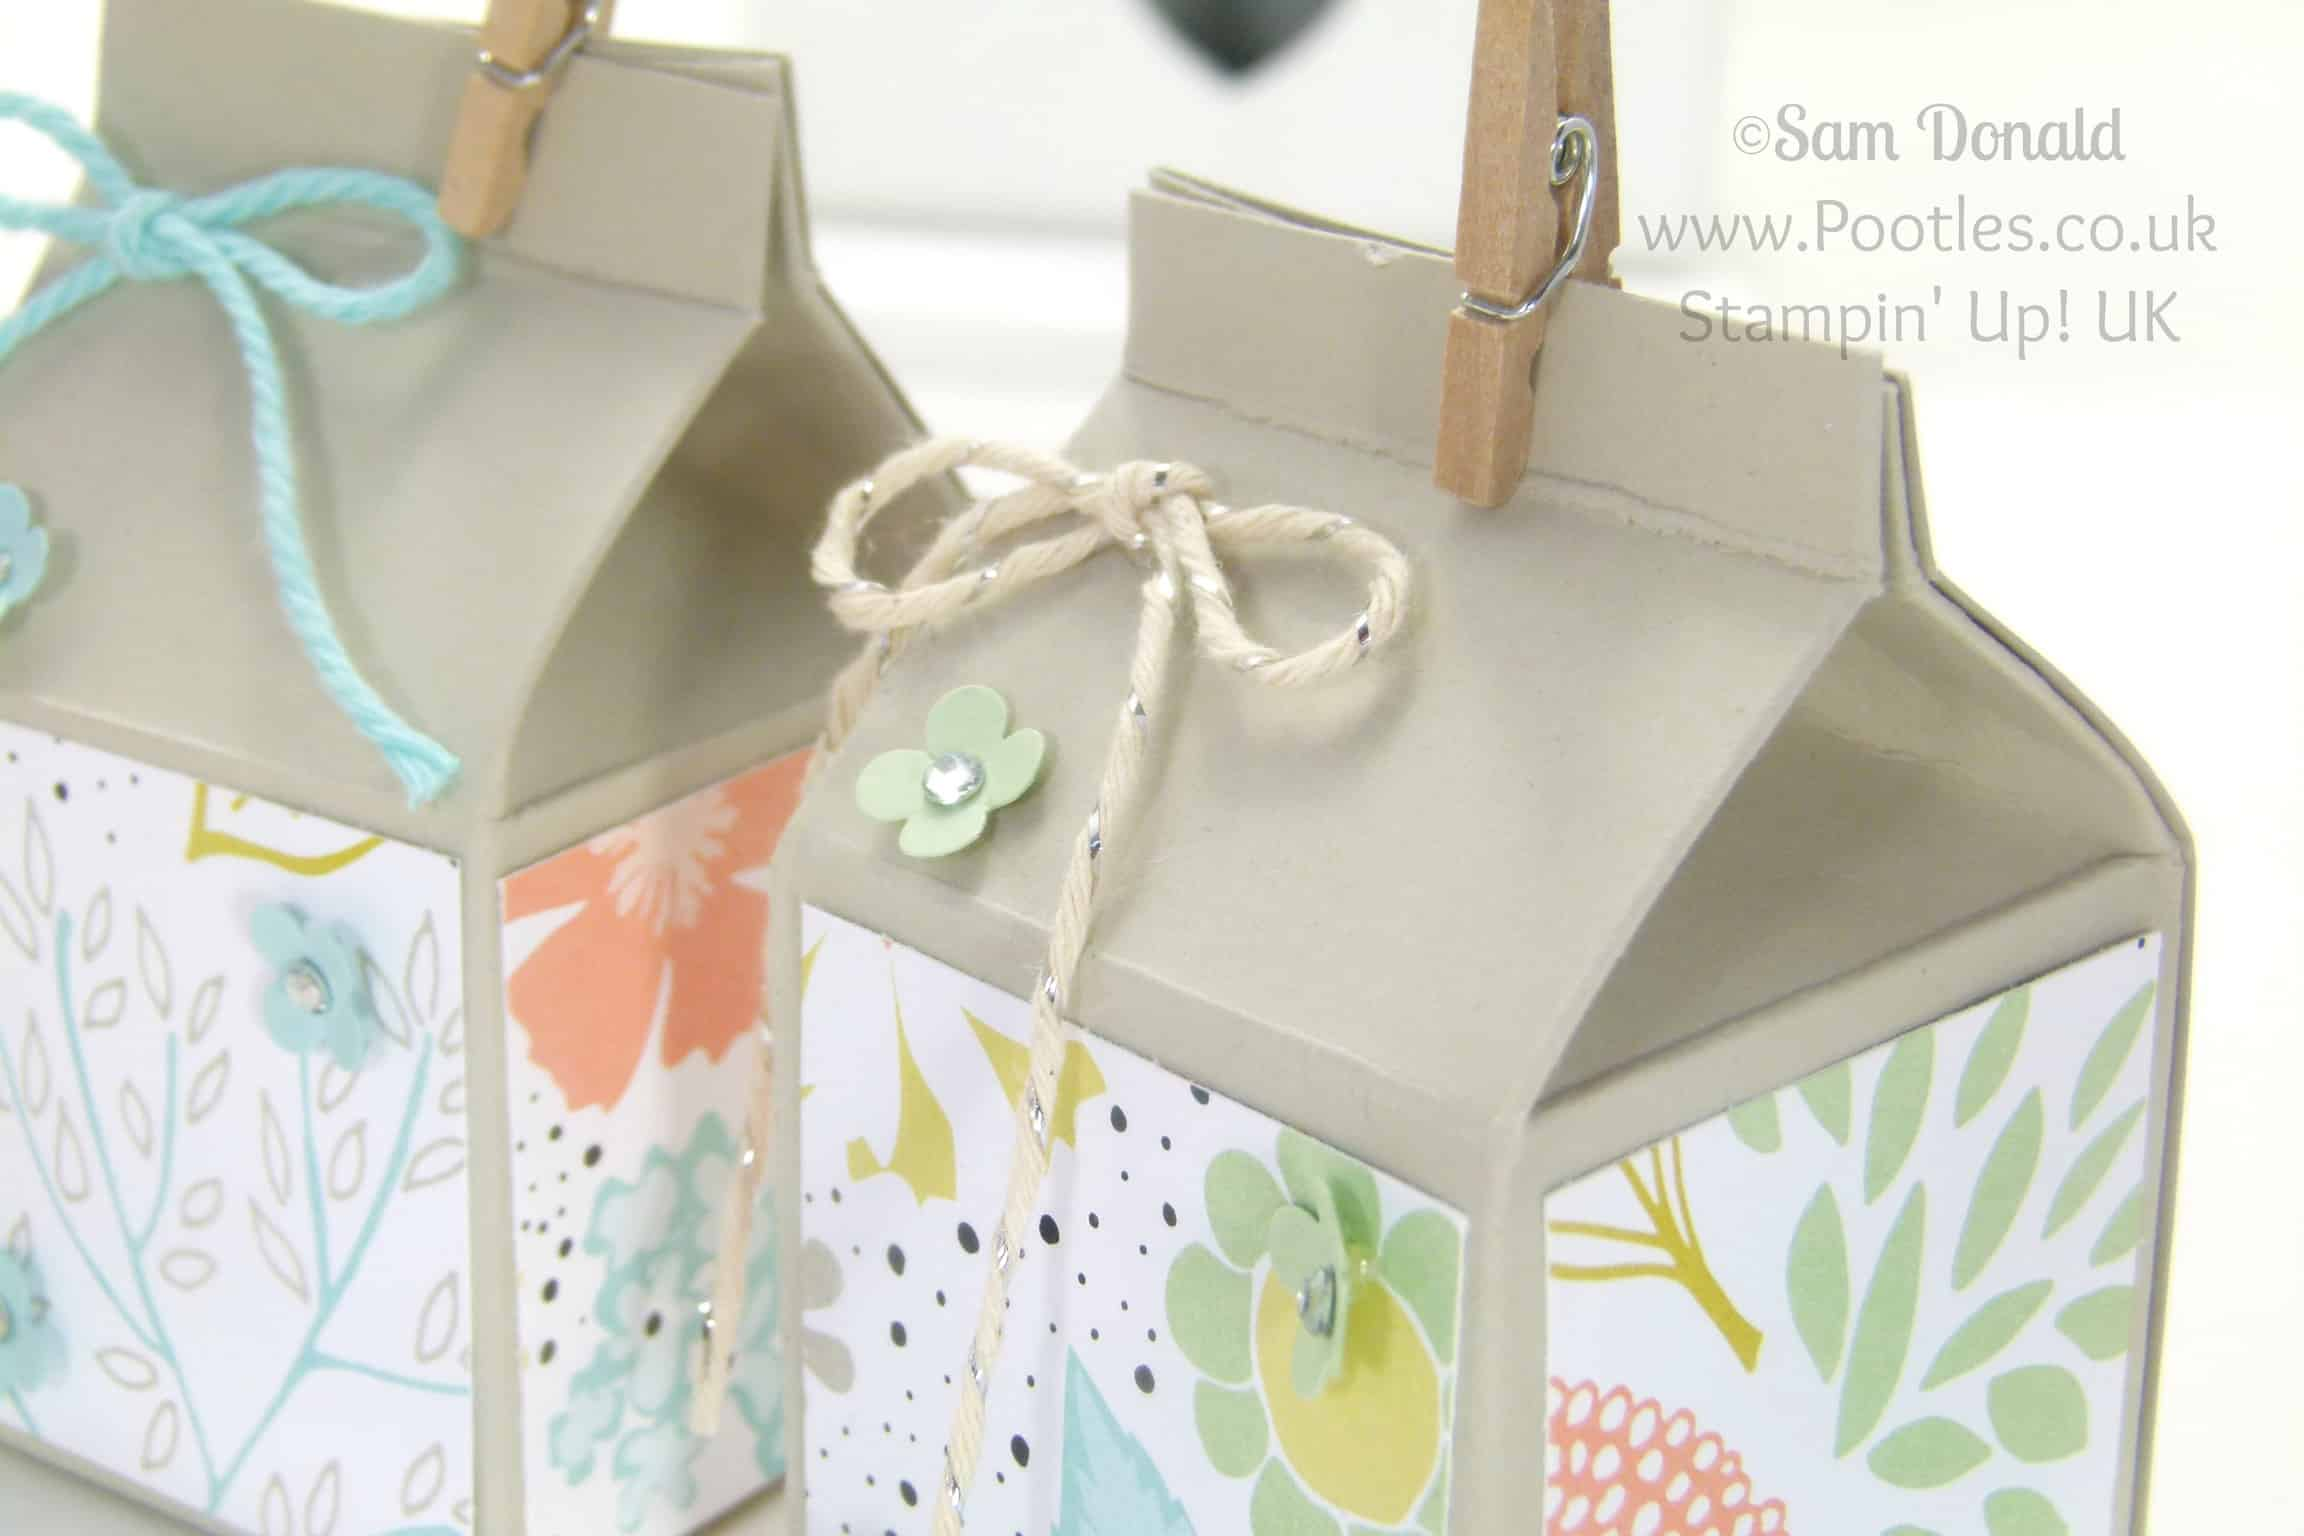 POOTLES Stampin' Up! UK Mini Hand Cut Milk Cartons Tutorial close up